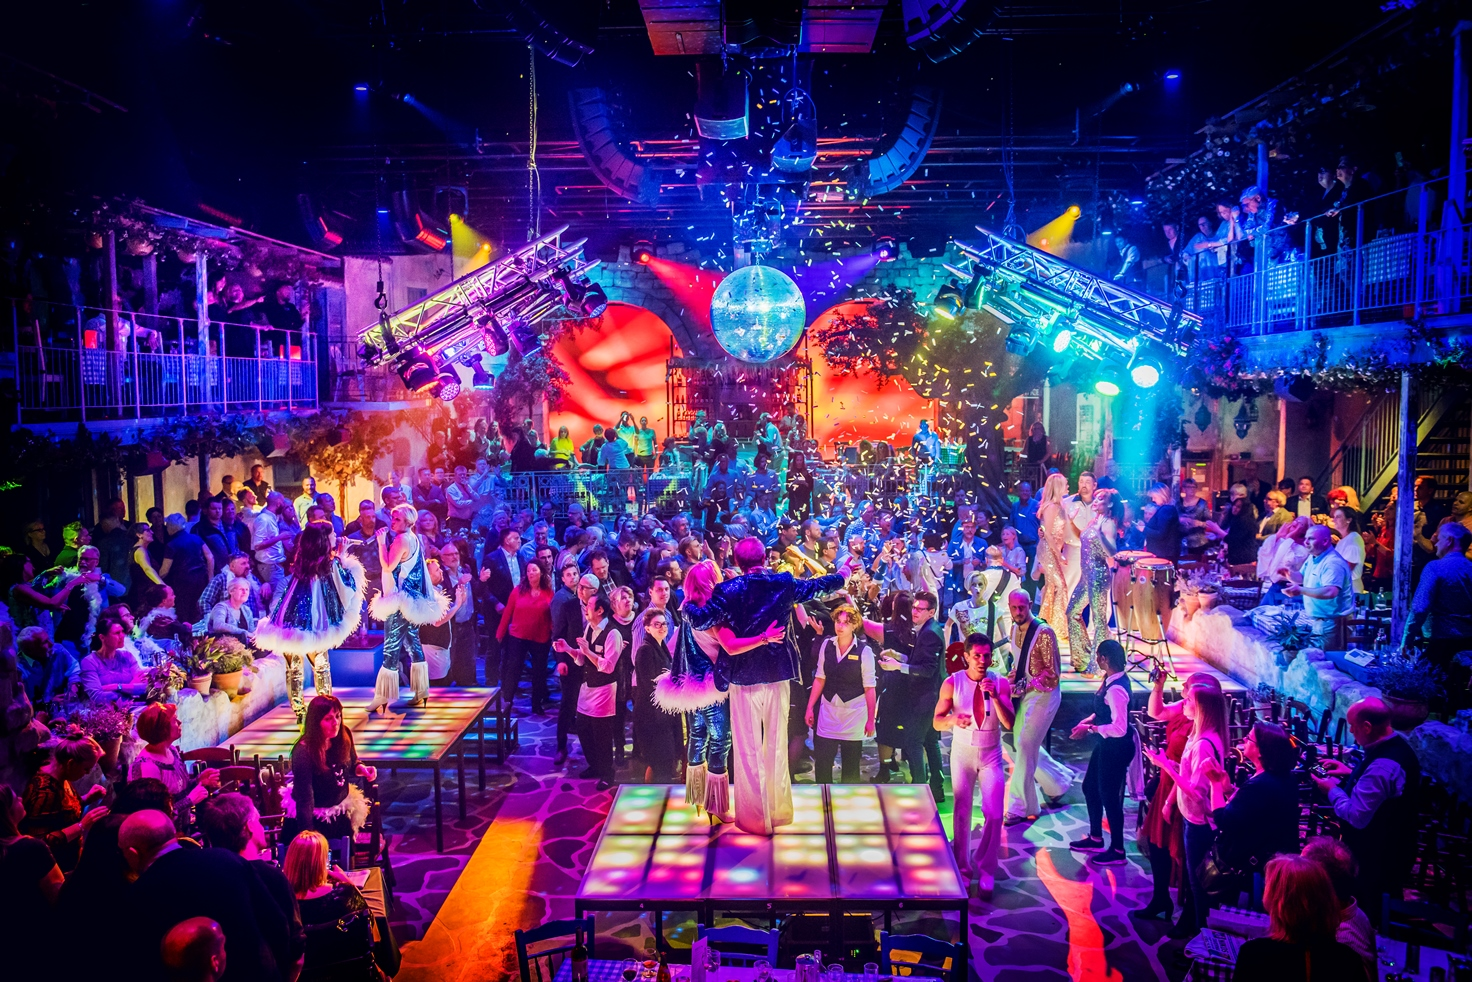 Mamma Mia The Party - The O2 Arena Complex, LondonTuesday 27 August 2019 to Friday 29 November 2020